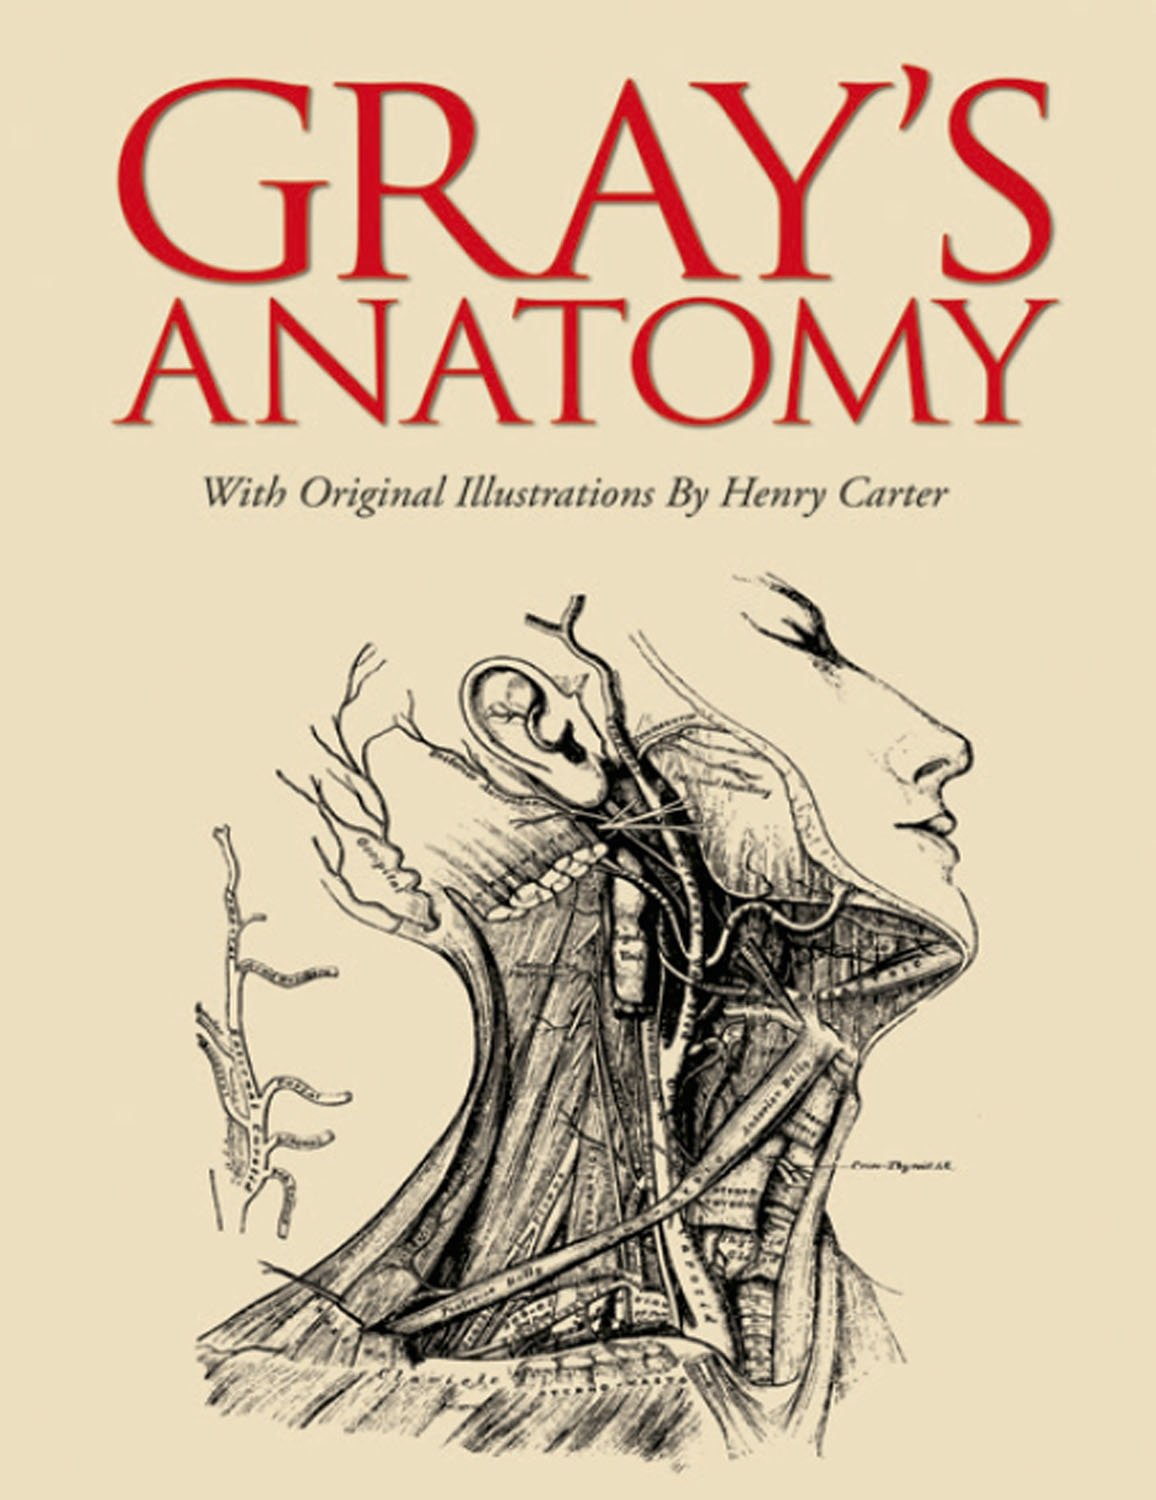 Buy Grays Anatomy Book Online at Low Prices in India | Grays Anatomy ...